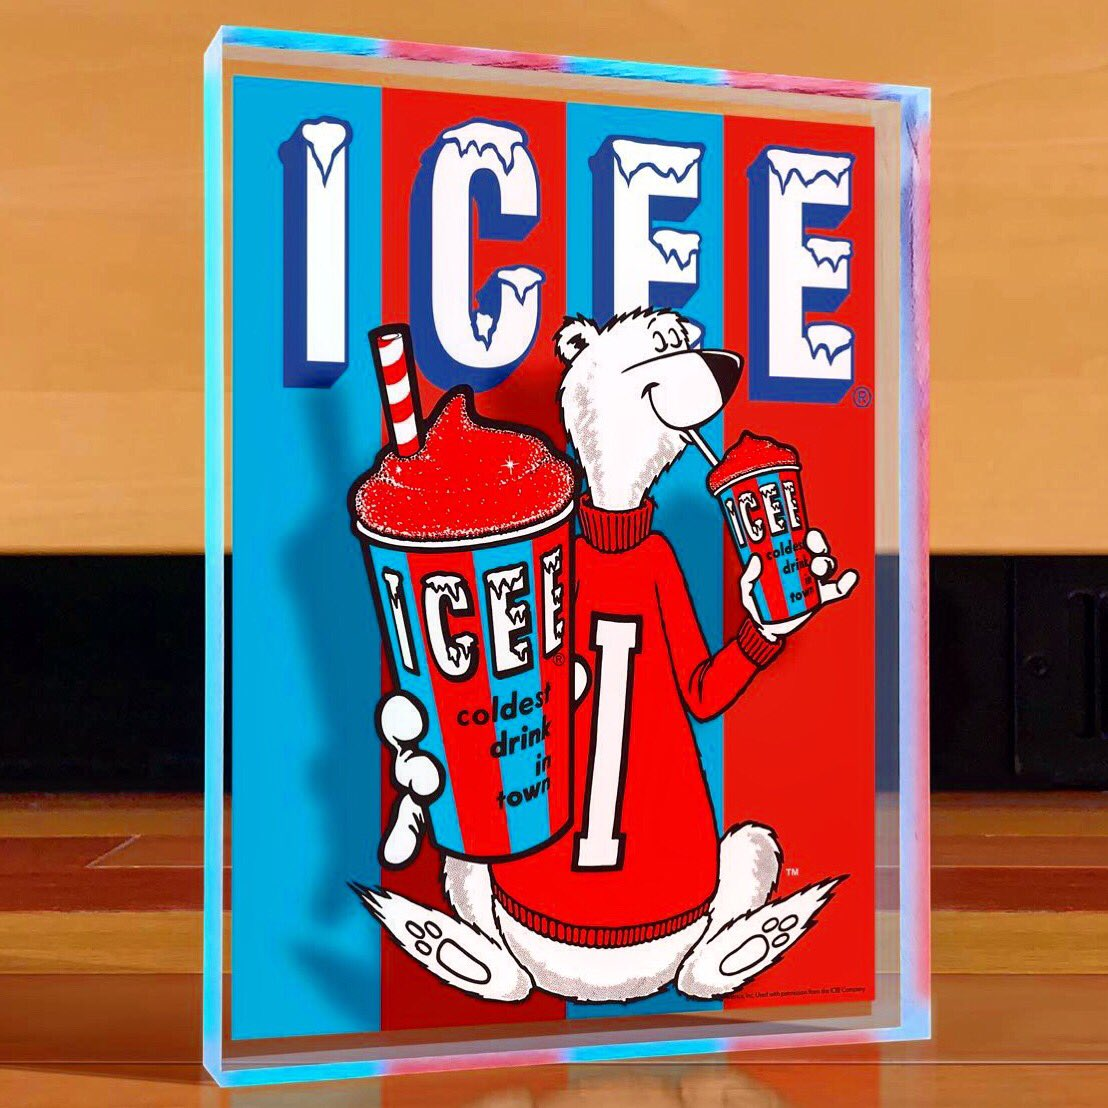 The Coolest Way to Celebrate the 4th! #ICEE https://t.co/lAF9nAjZki @Official_ICEE #art #desktop #artwork #cool #cherry #coke #raspberry #frozen #treat #refreshment #red #blue #polarbear #frosty #cold #icecold #tasty #drinks #classic #retro #3d #food #eat #usa #america #4thofjuly https://t.co/XzpNu26OnA